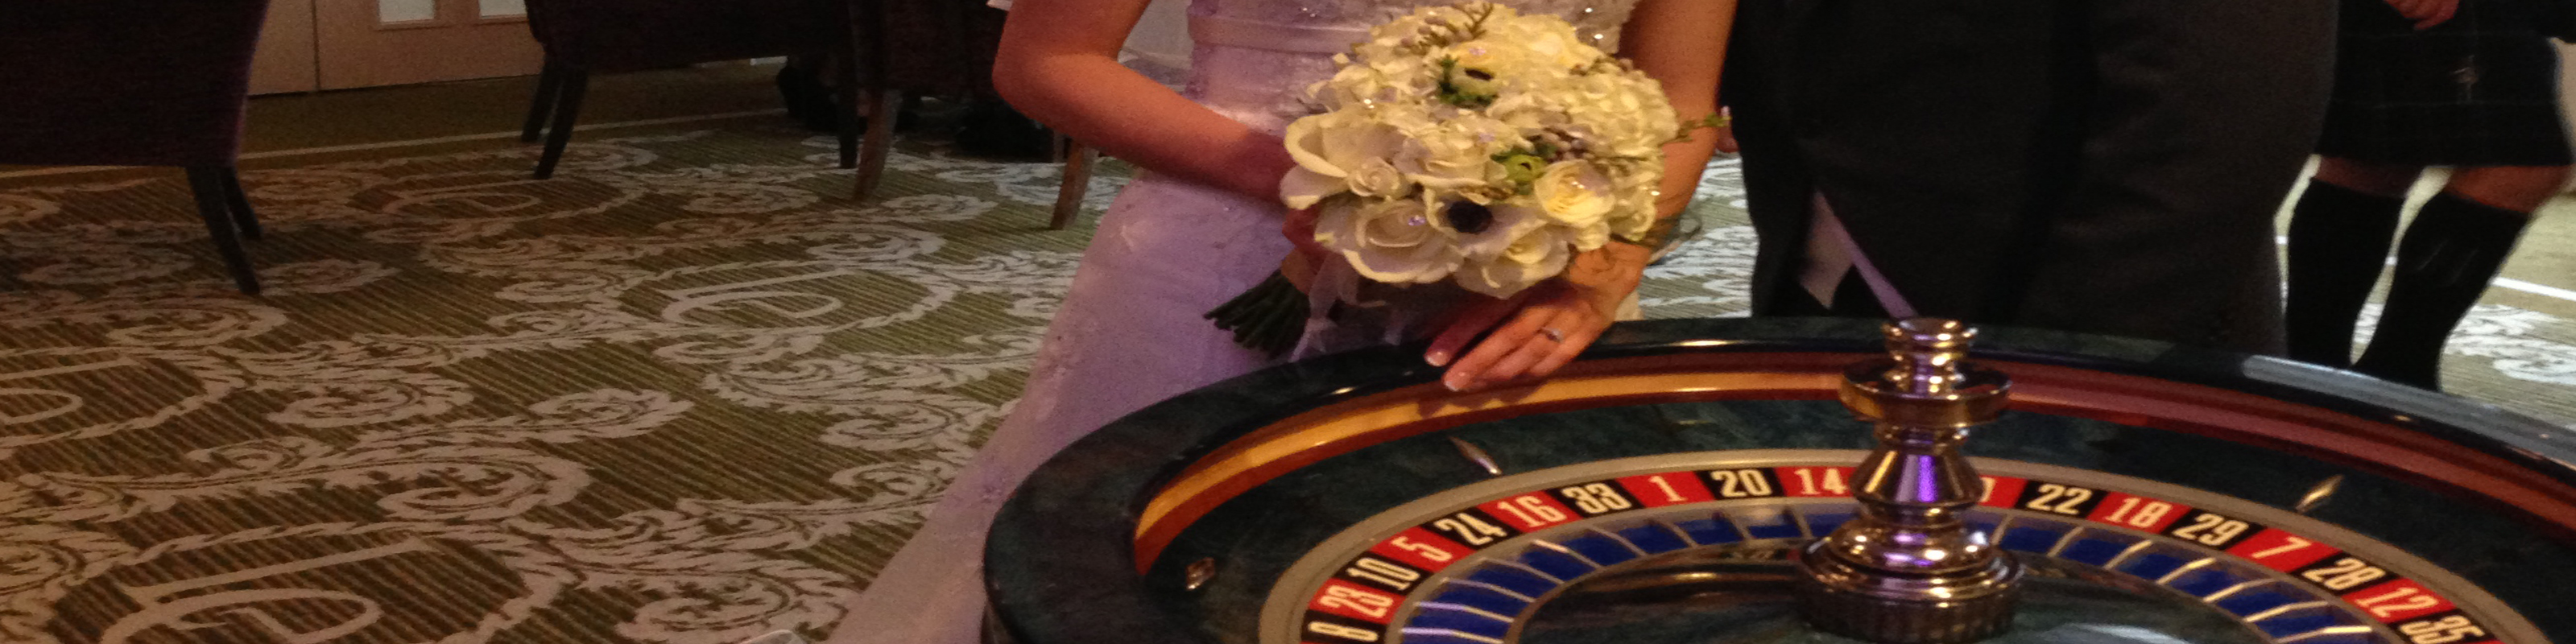 wedding casino dublin